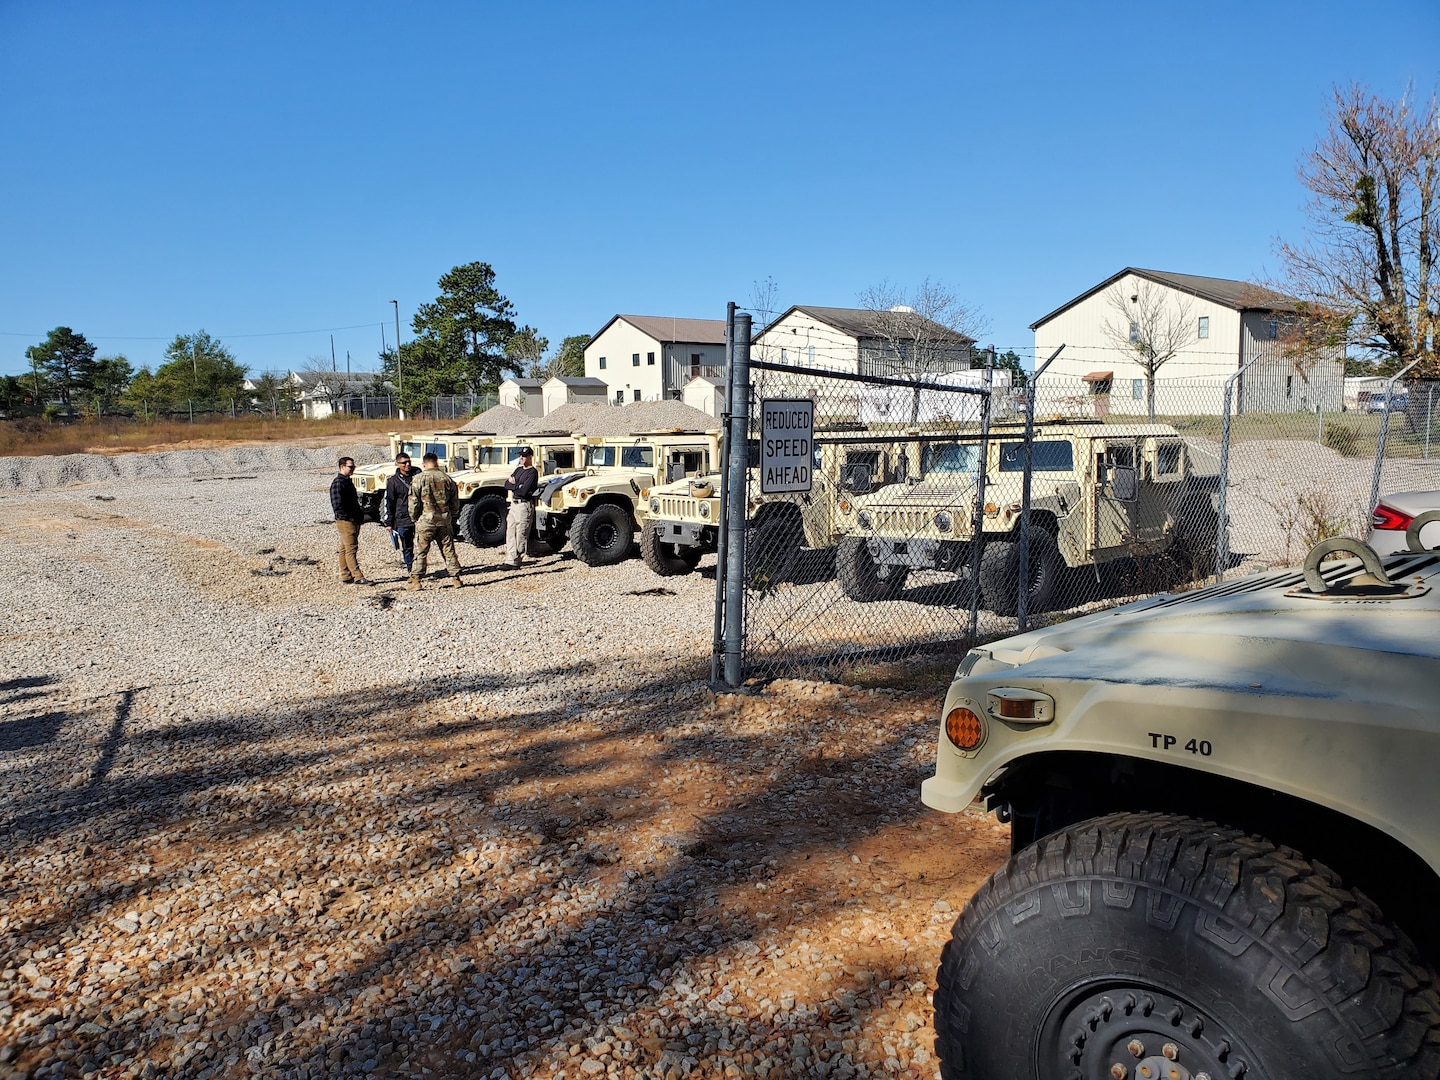 DLA Disposition Services personnel welcome members of the 95th Civil Affairs Brigade arriving Nov. 4 at the Fort Bragg site to turn-in excess Humvees.